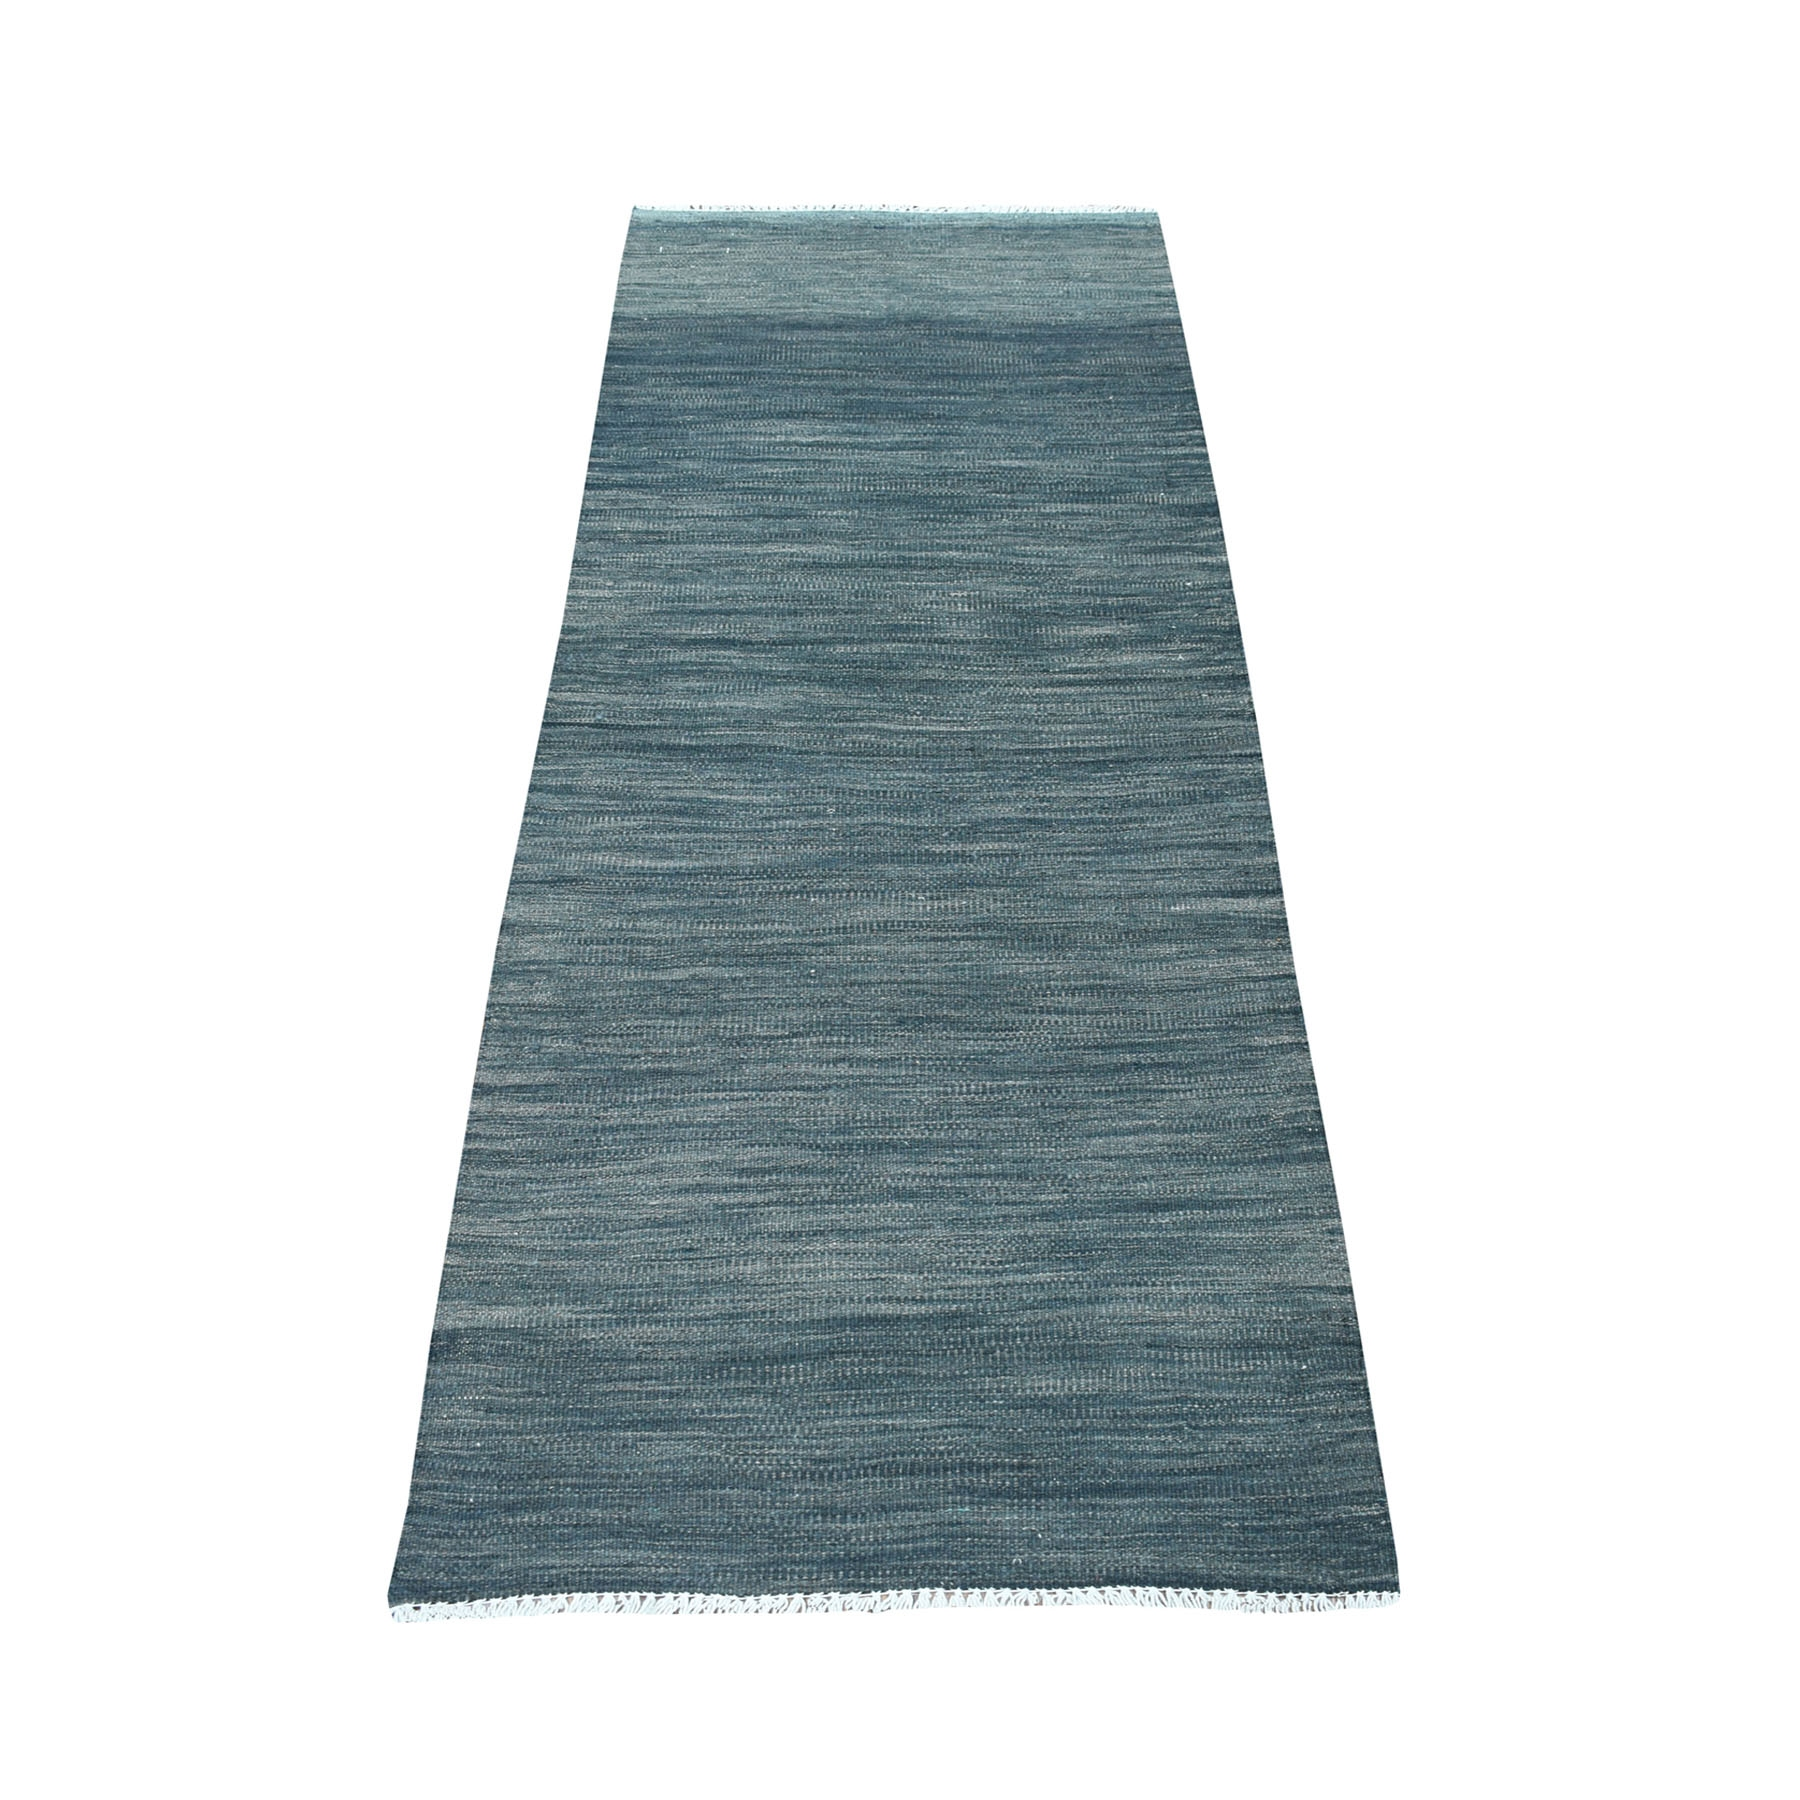 "2'4""X6'4"" Charcoal Gray Shades Flat Weave Kilim Pure Wool Hand Woven Runner Oriental Rug moaec8dc"